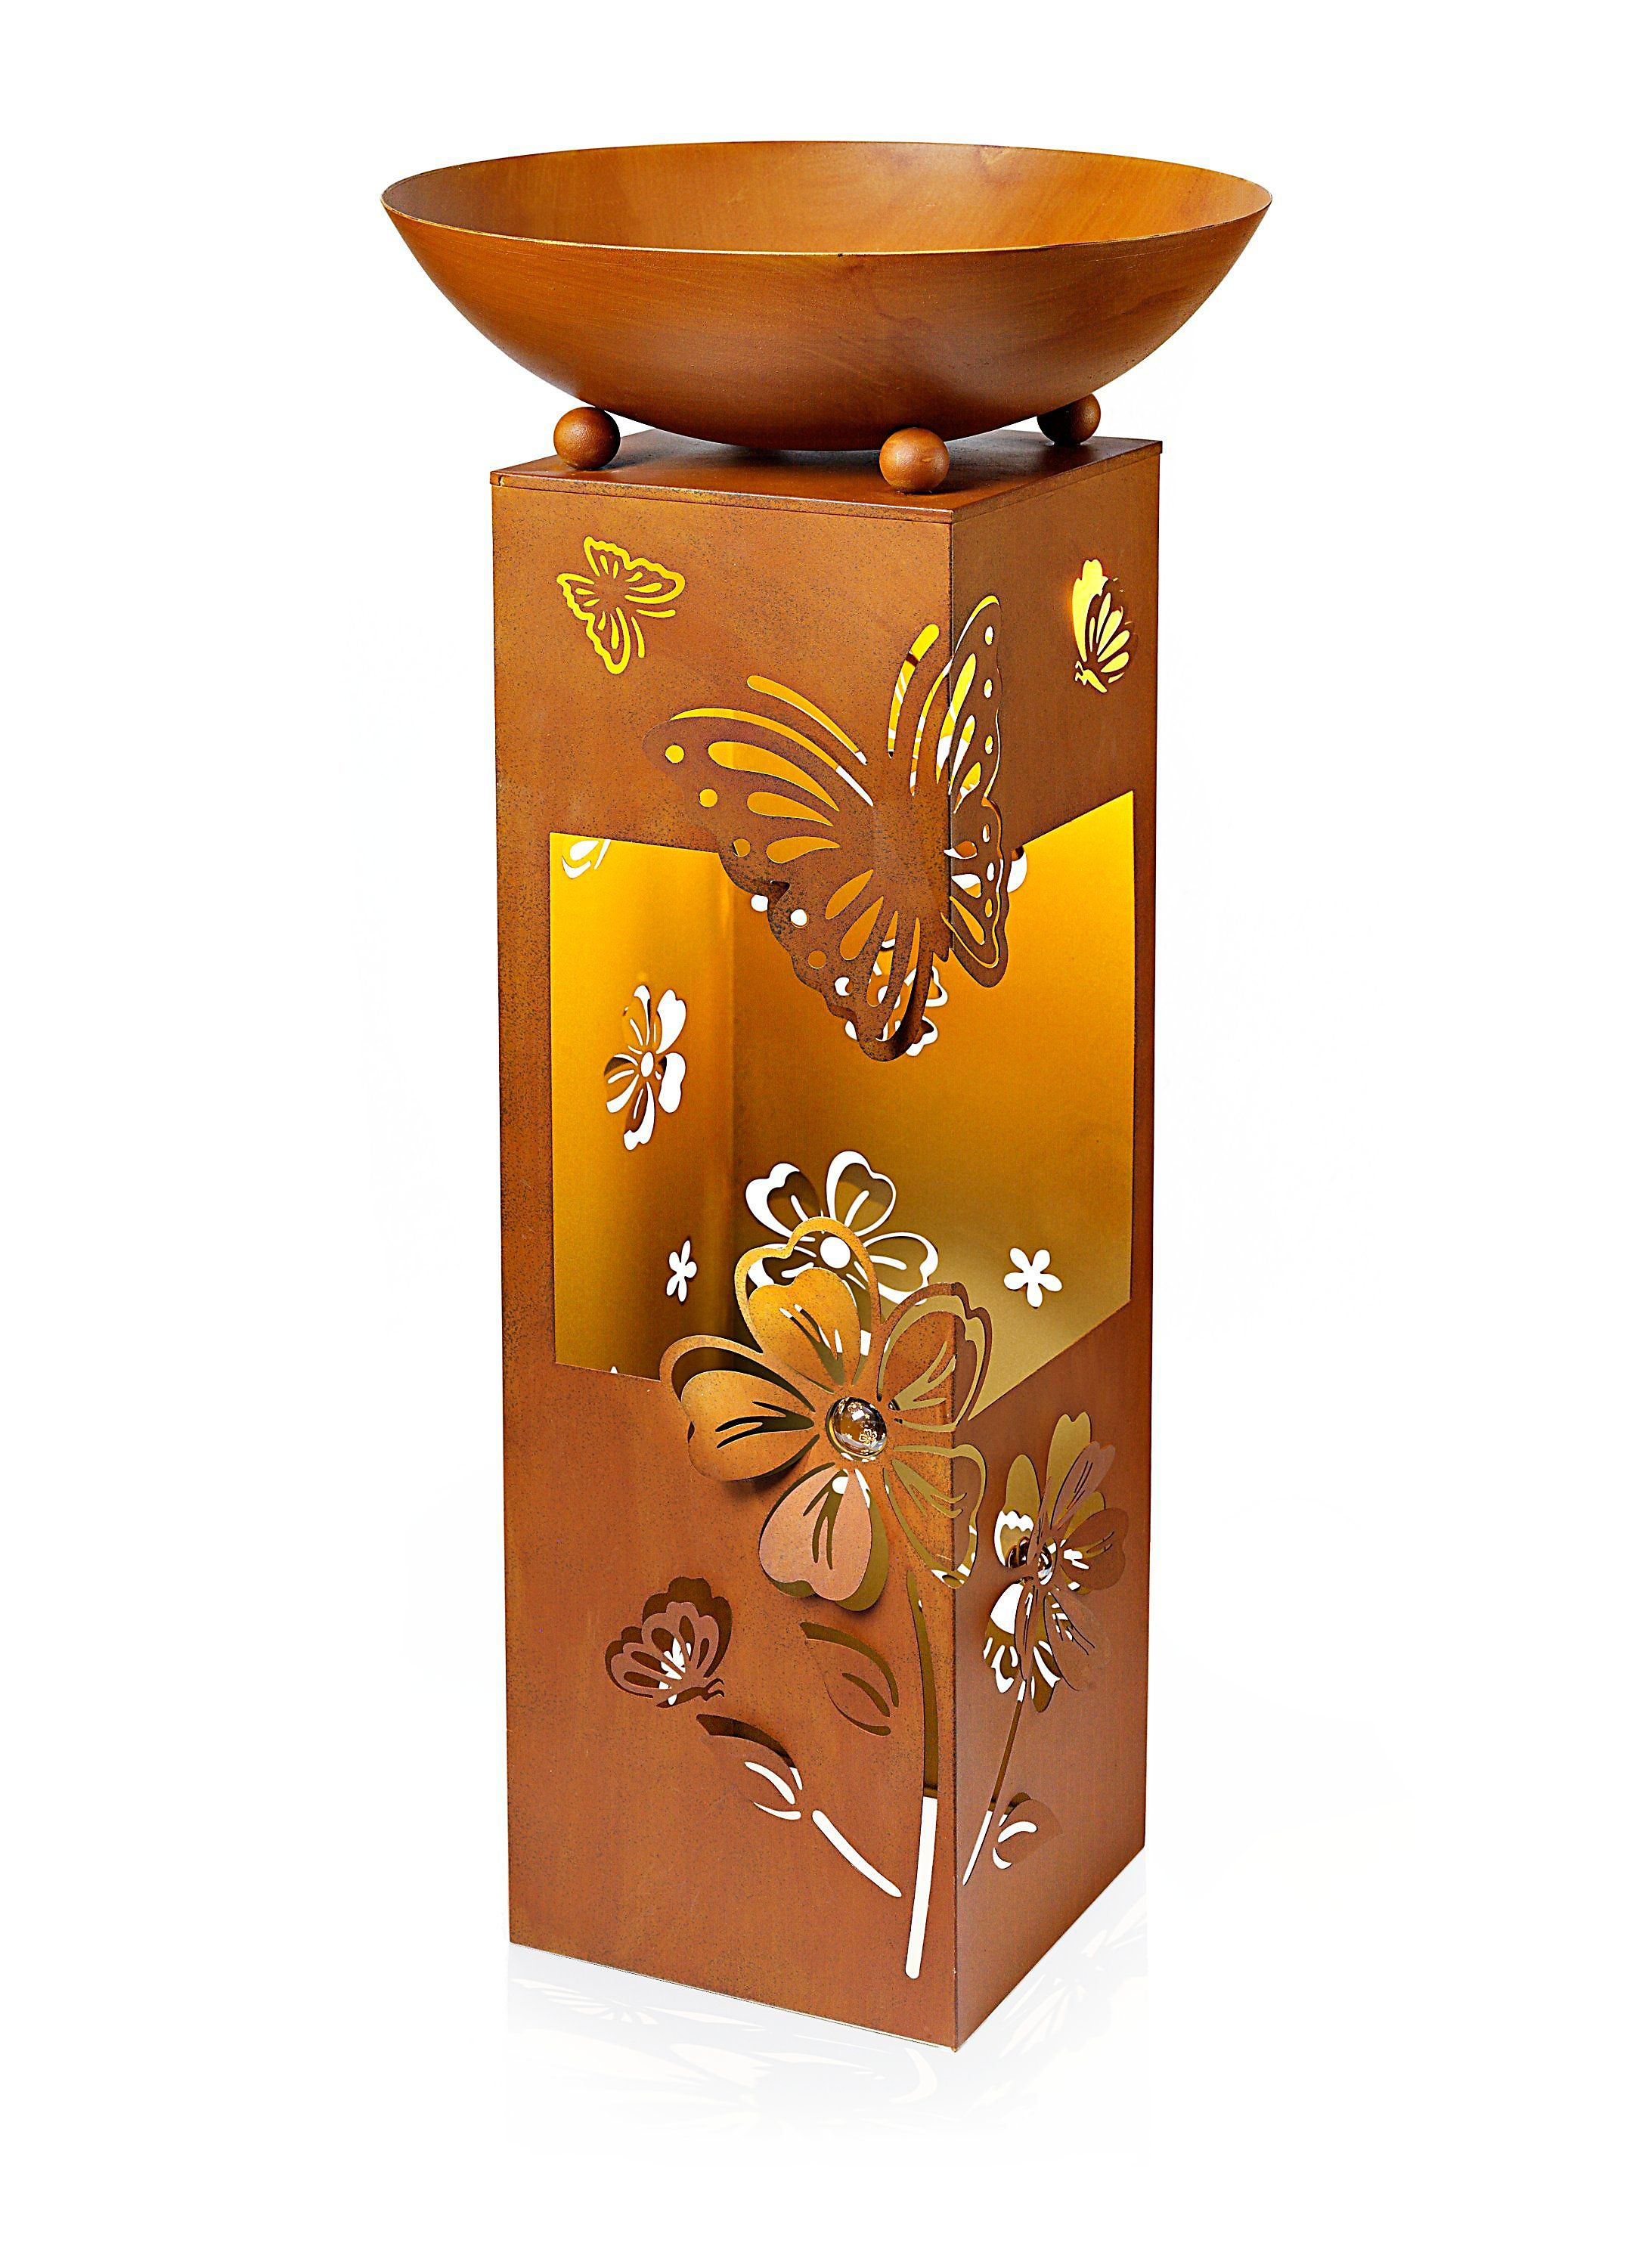 Pflanzsaule Butterfly Mit Led Beleuchtung Bestellen Weltbild De Led Beleuchtung Led Beleuchtung